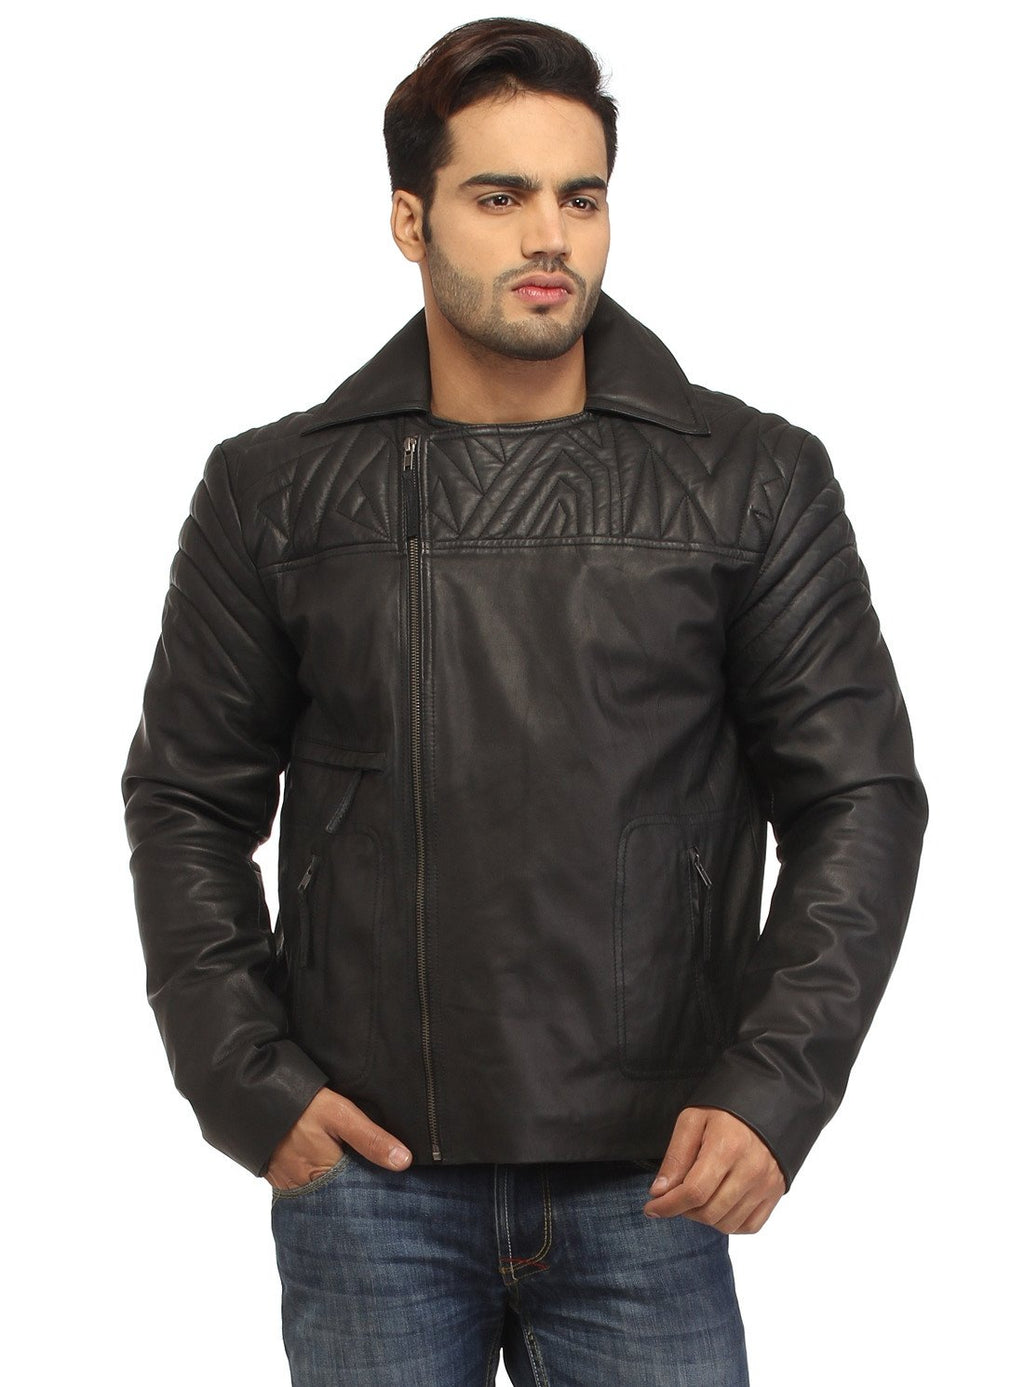 Men Leather Asymmetrical Quilted Biker Jacket , Men Jacket - CrabRocks, LeatherfashionOnline  - 1